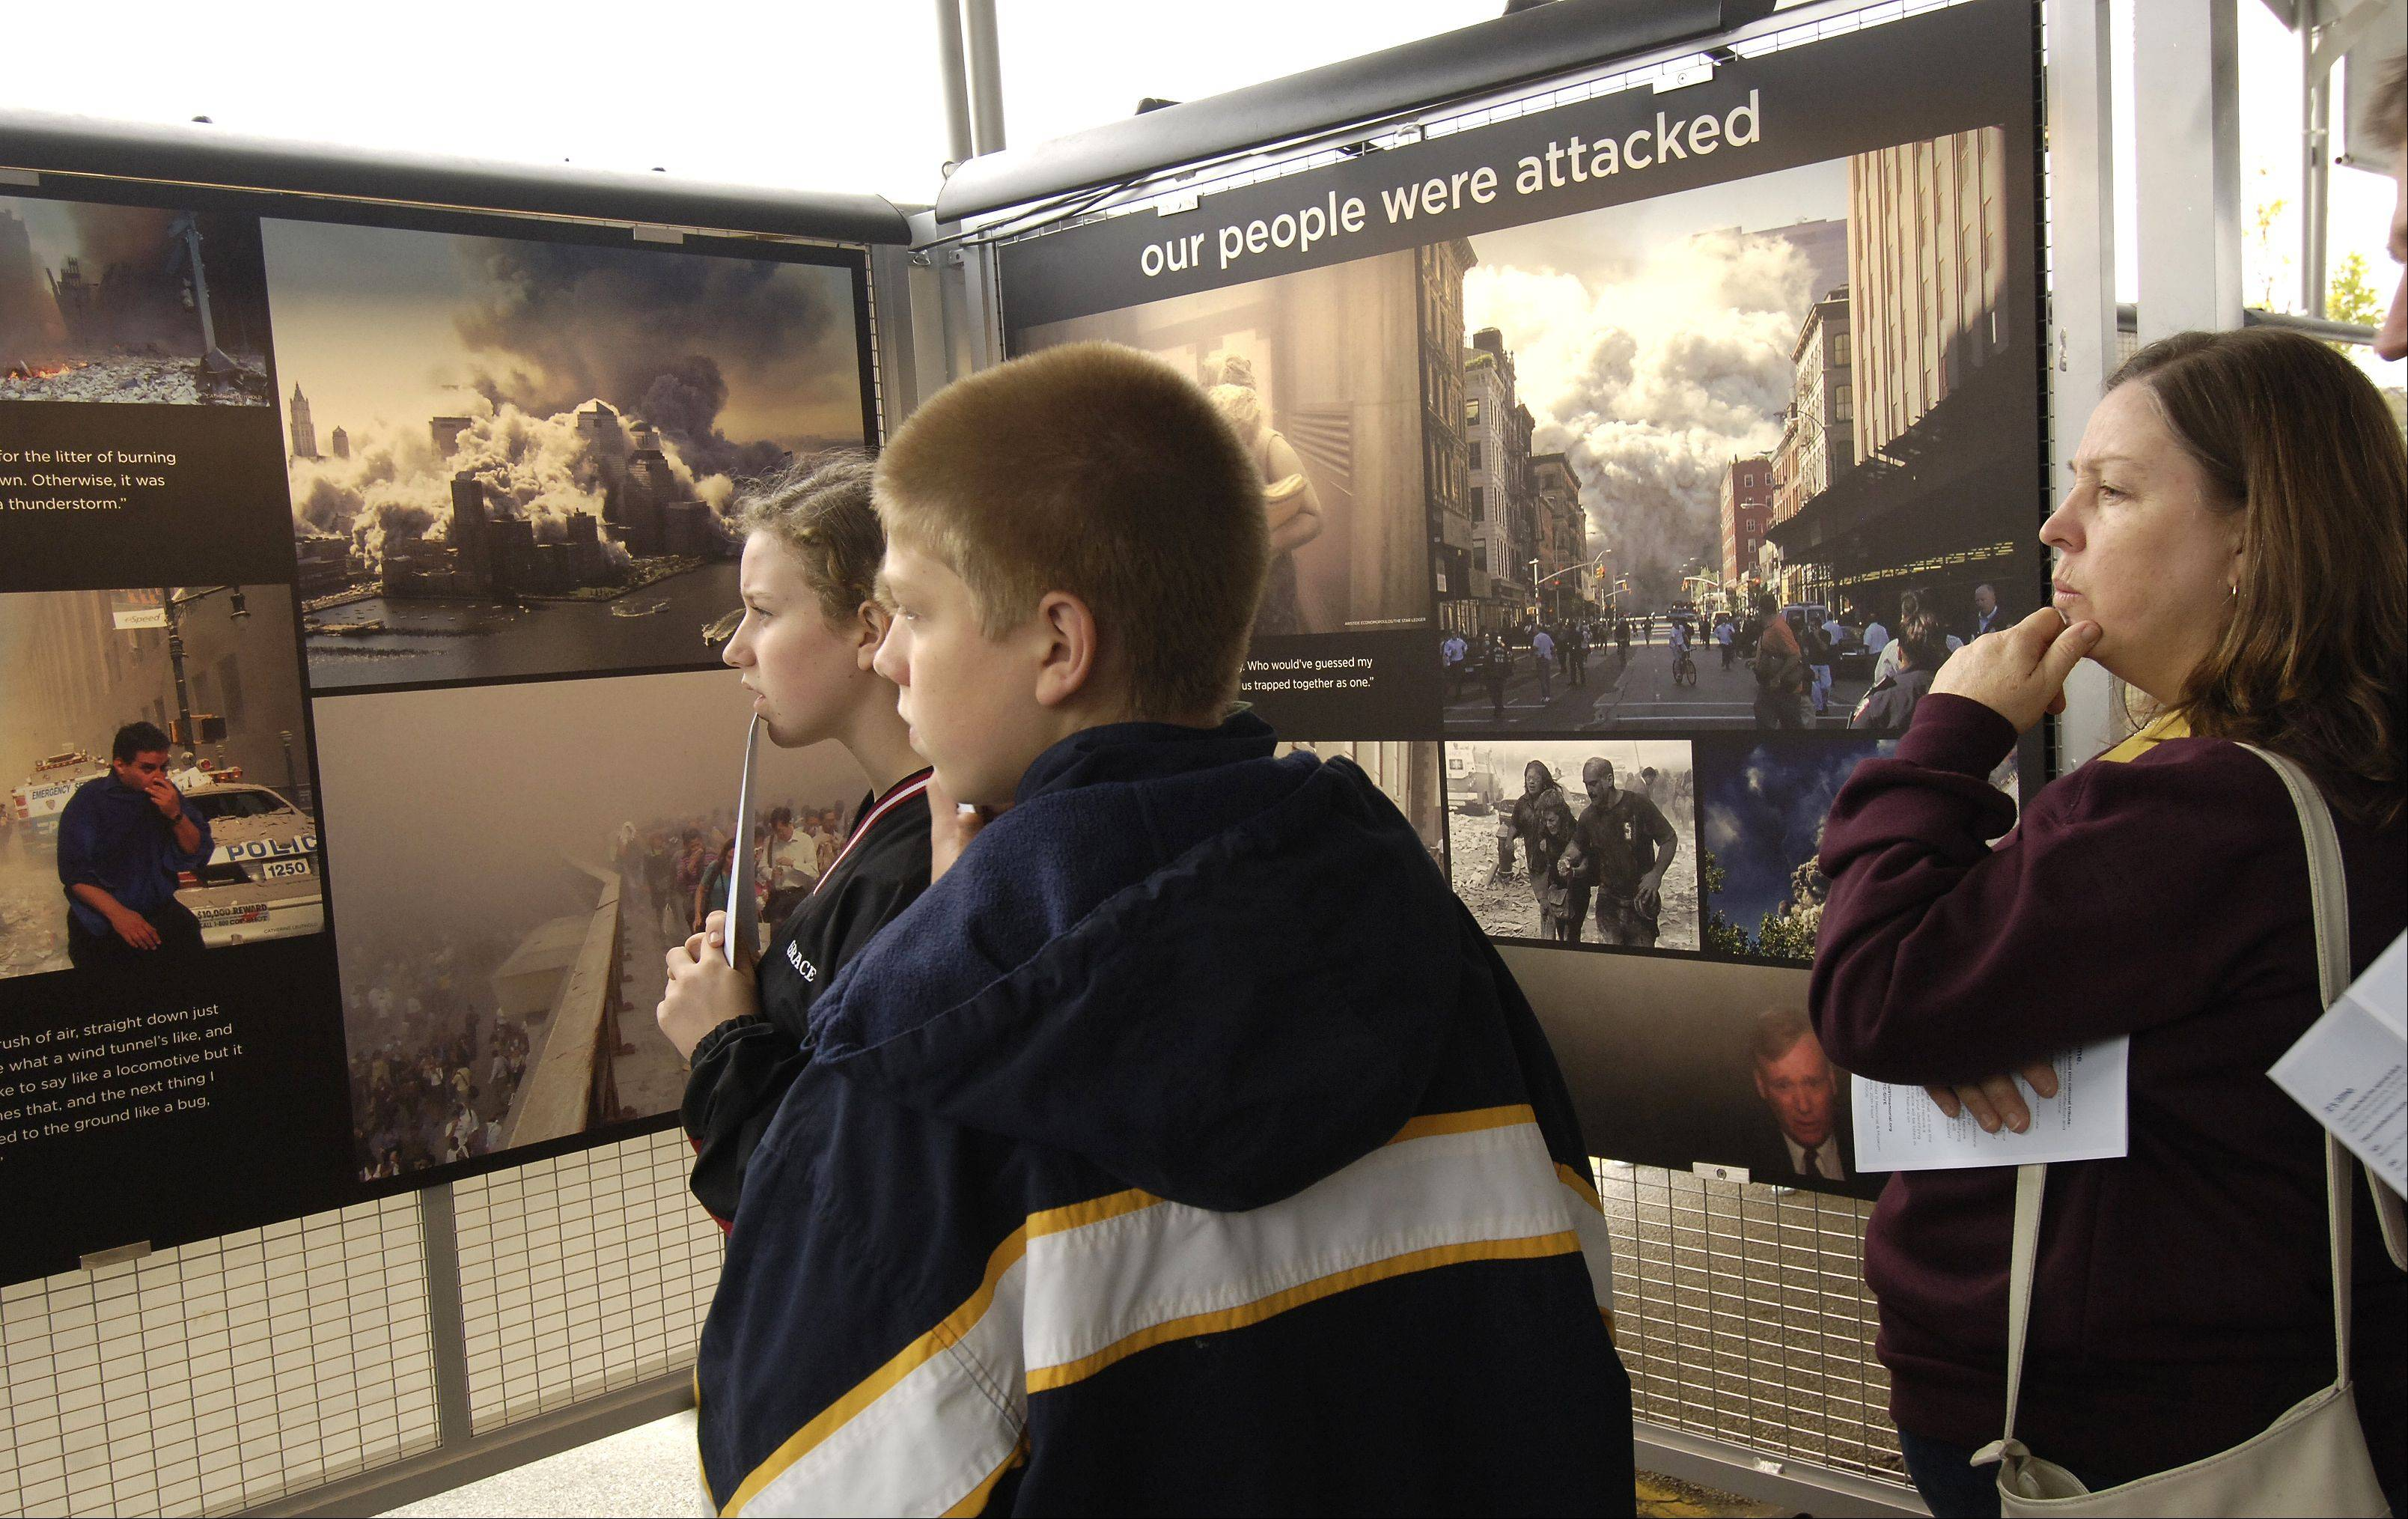 An exhibit showing photos of the World Trade Center immediately following the Sept. 11 terrorist attacks of 2001 can be viewed at the Aurora Regional Fire Museum, 53 N. Broadway St., following Aurora's 10th anniversary remembrance ceremony at 10 a.m. Friday, Sept. 9.